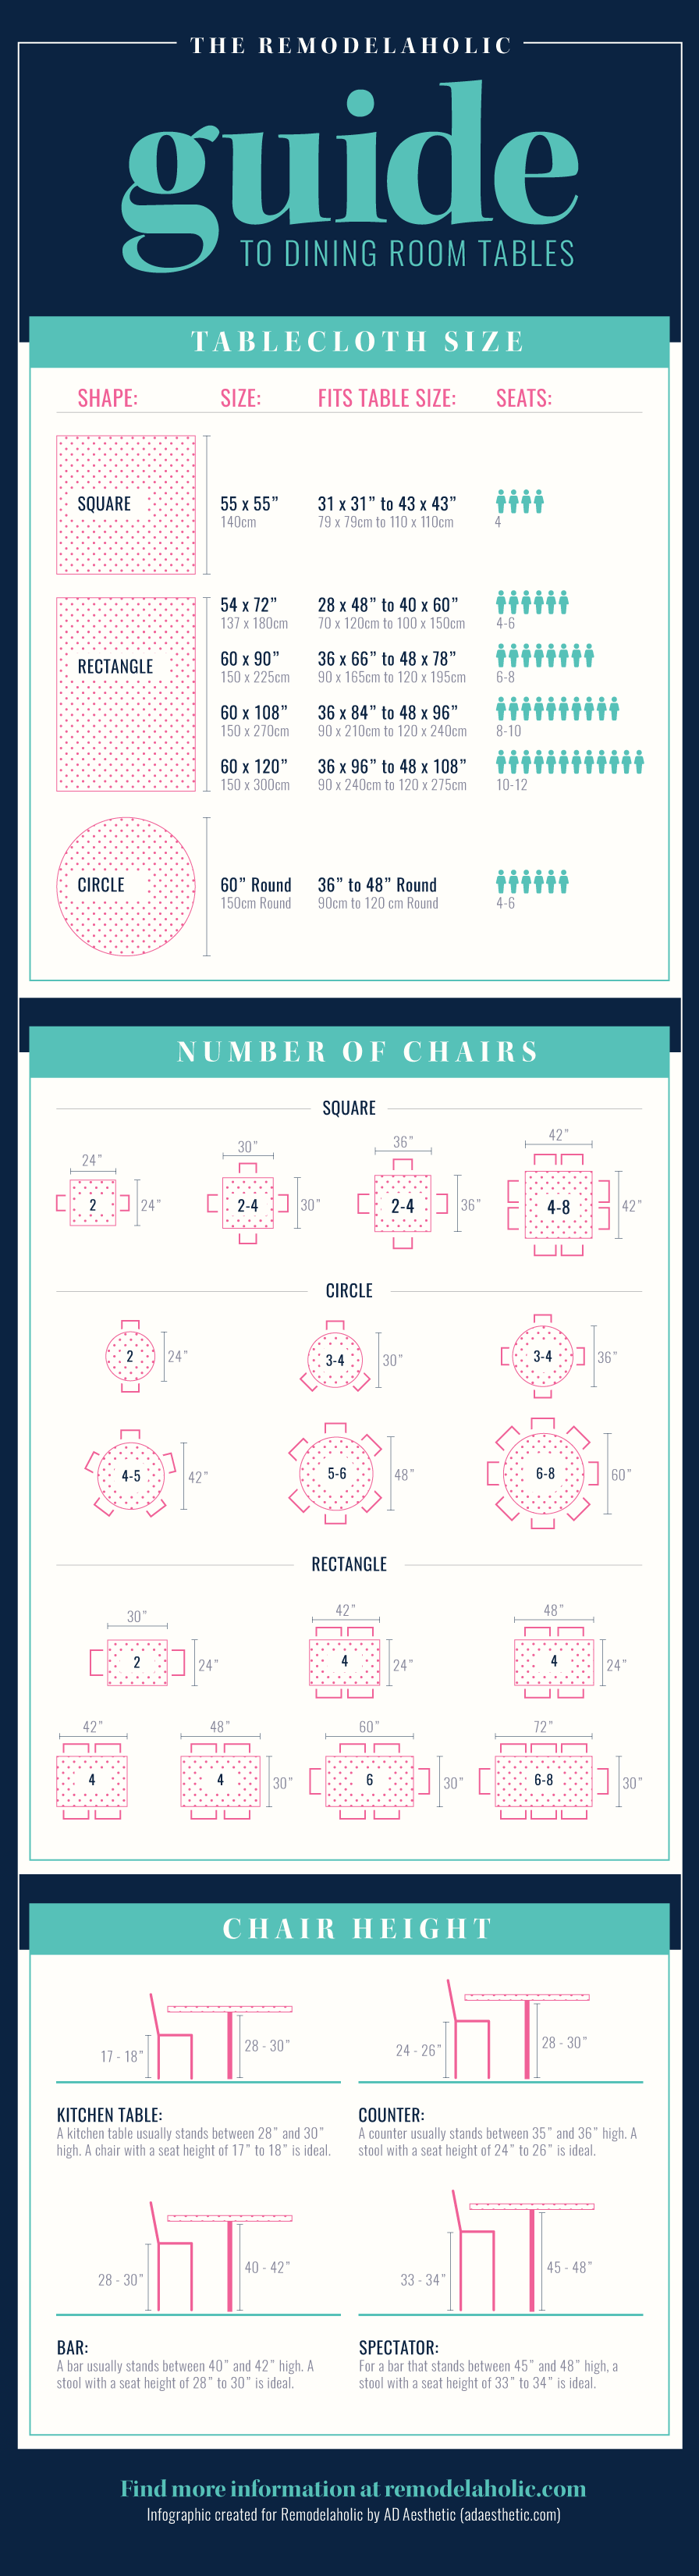 MUST PIN! This has ALL the best info about dining table sizes! Standard sizes and heights, how many can sit at each size table, plus what height dining chairs should be and what size tablecloth is just right for the dining table.